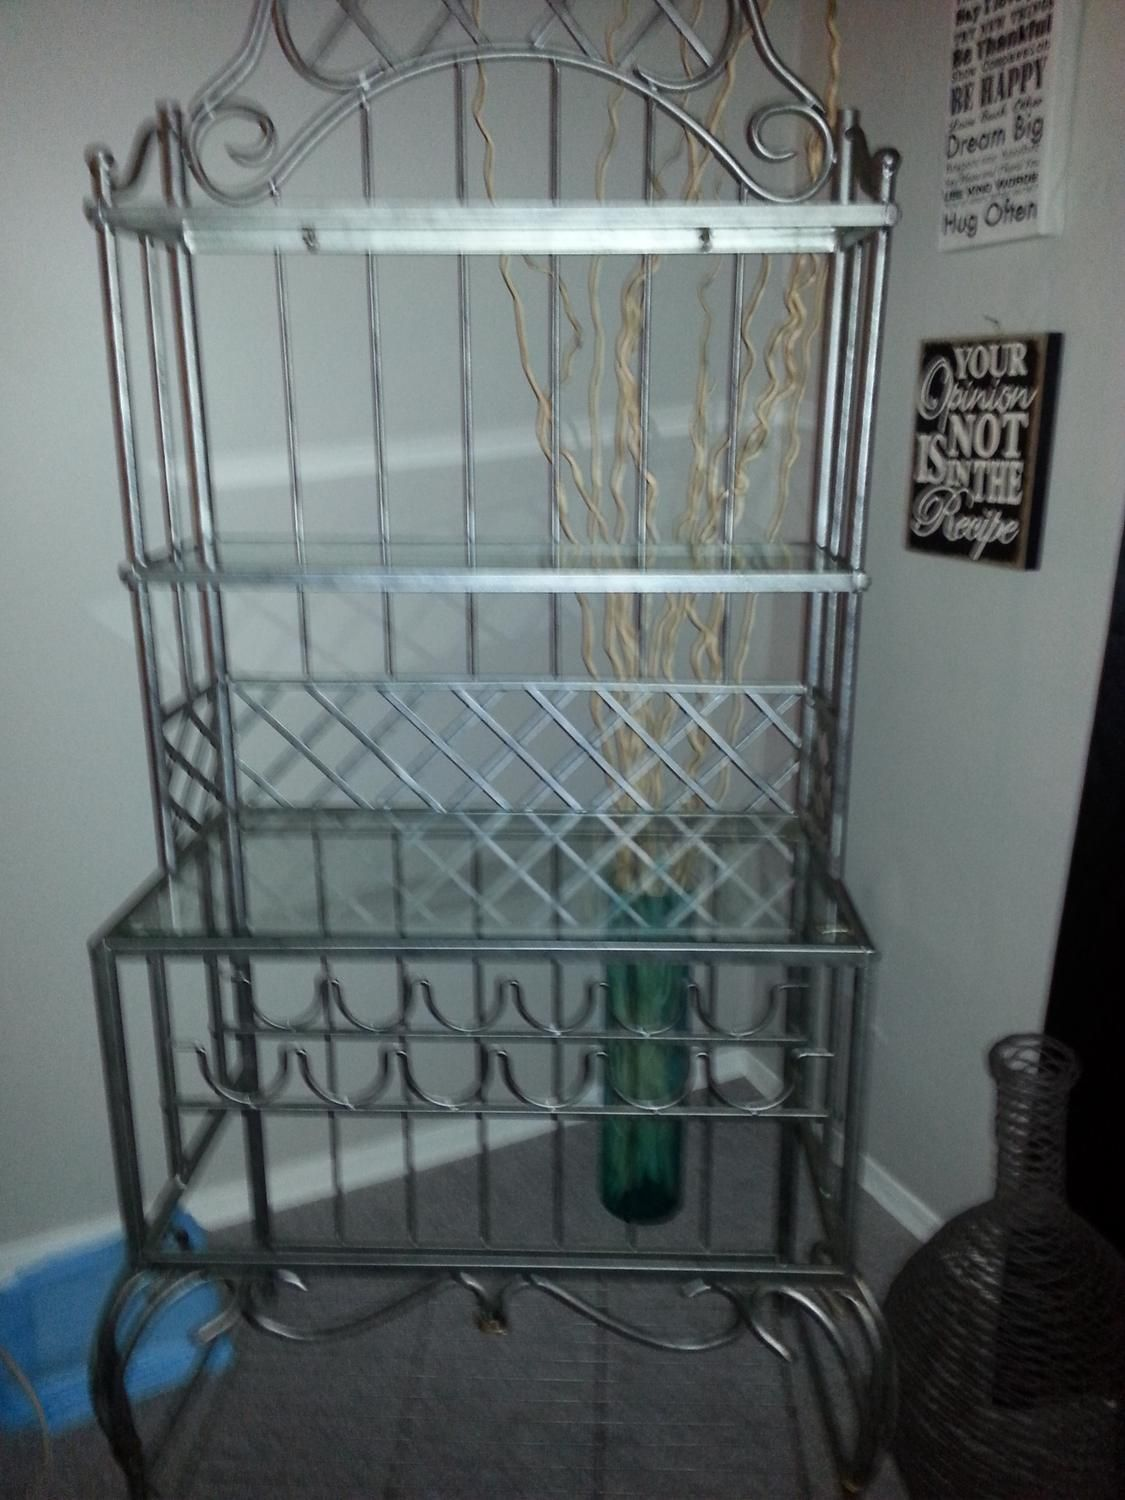 Pewter Baker S Rack 50 Varagesale Sarnia With Images Sarnia